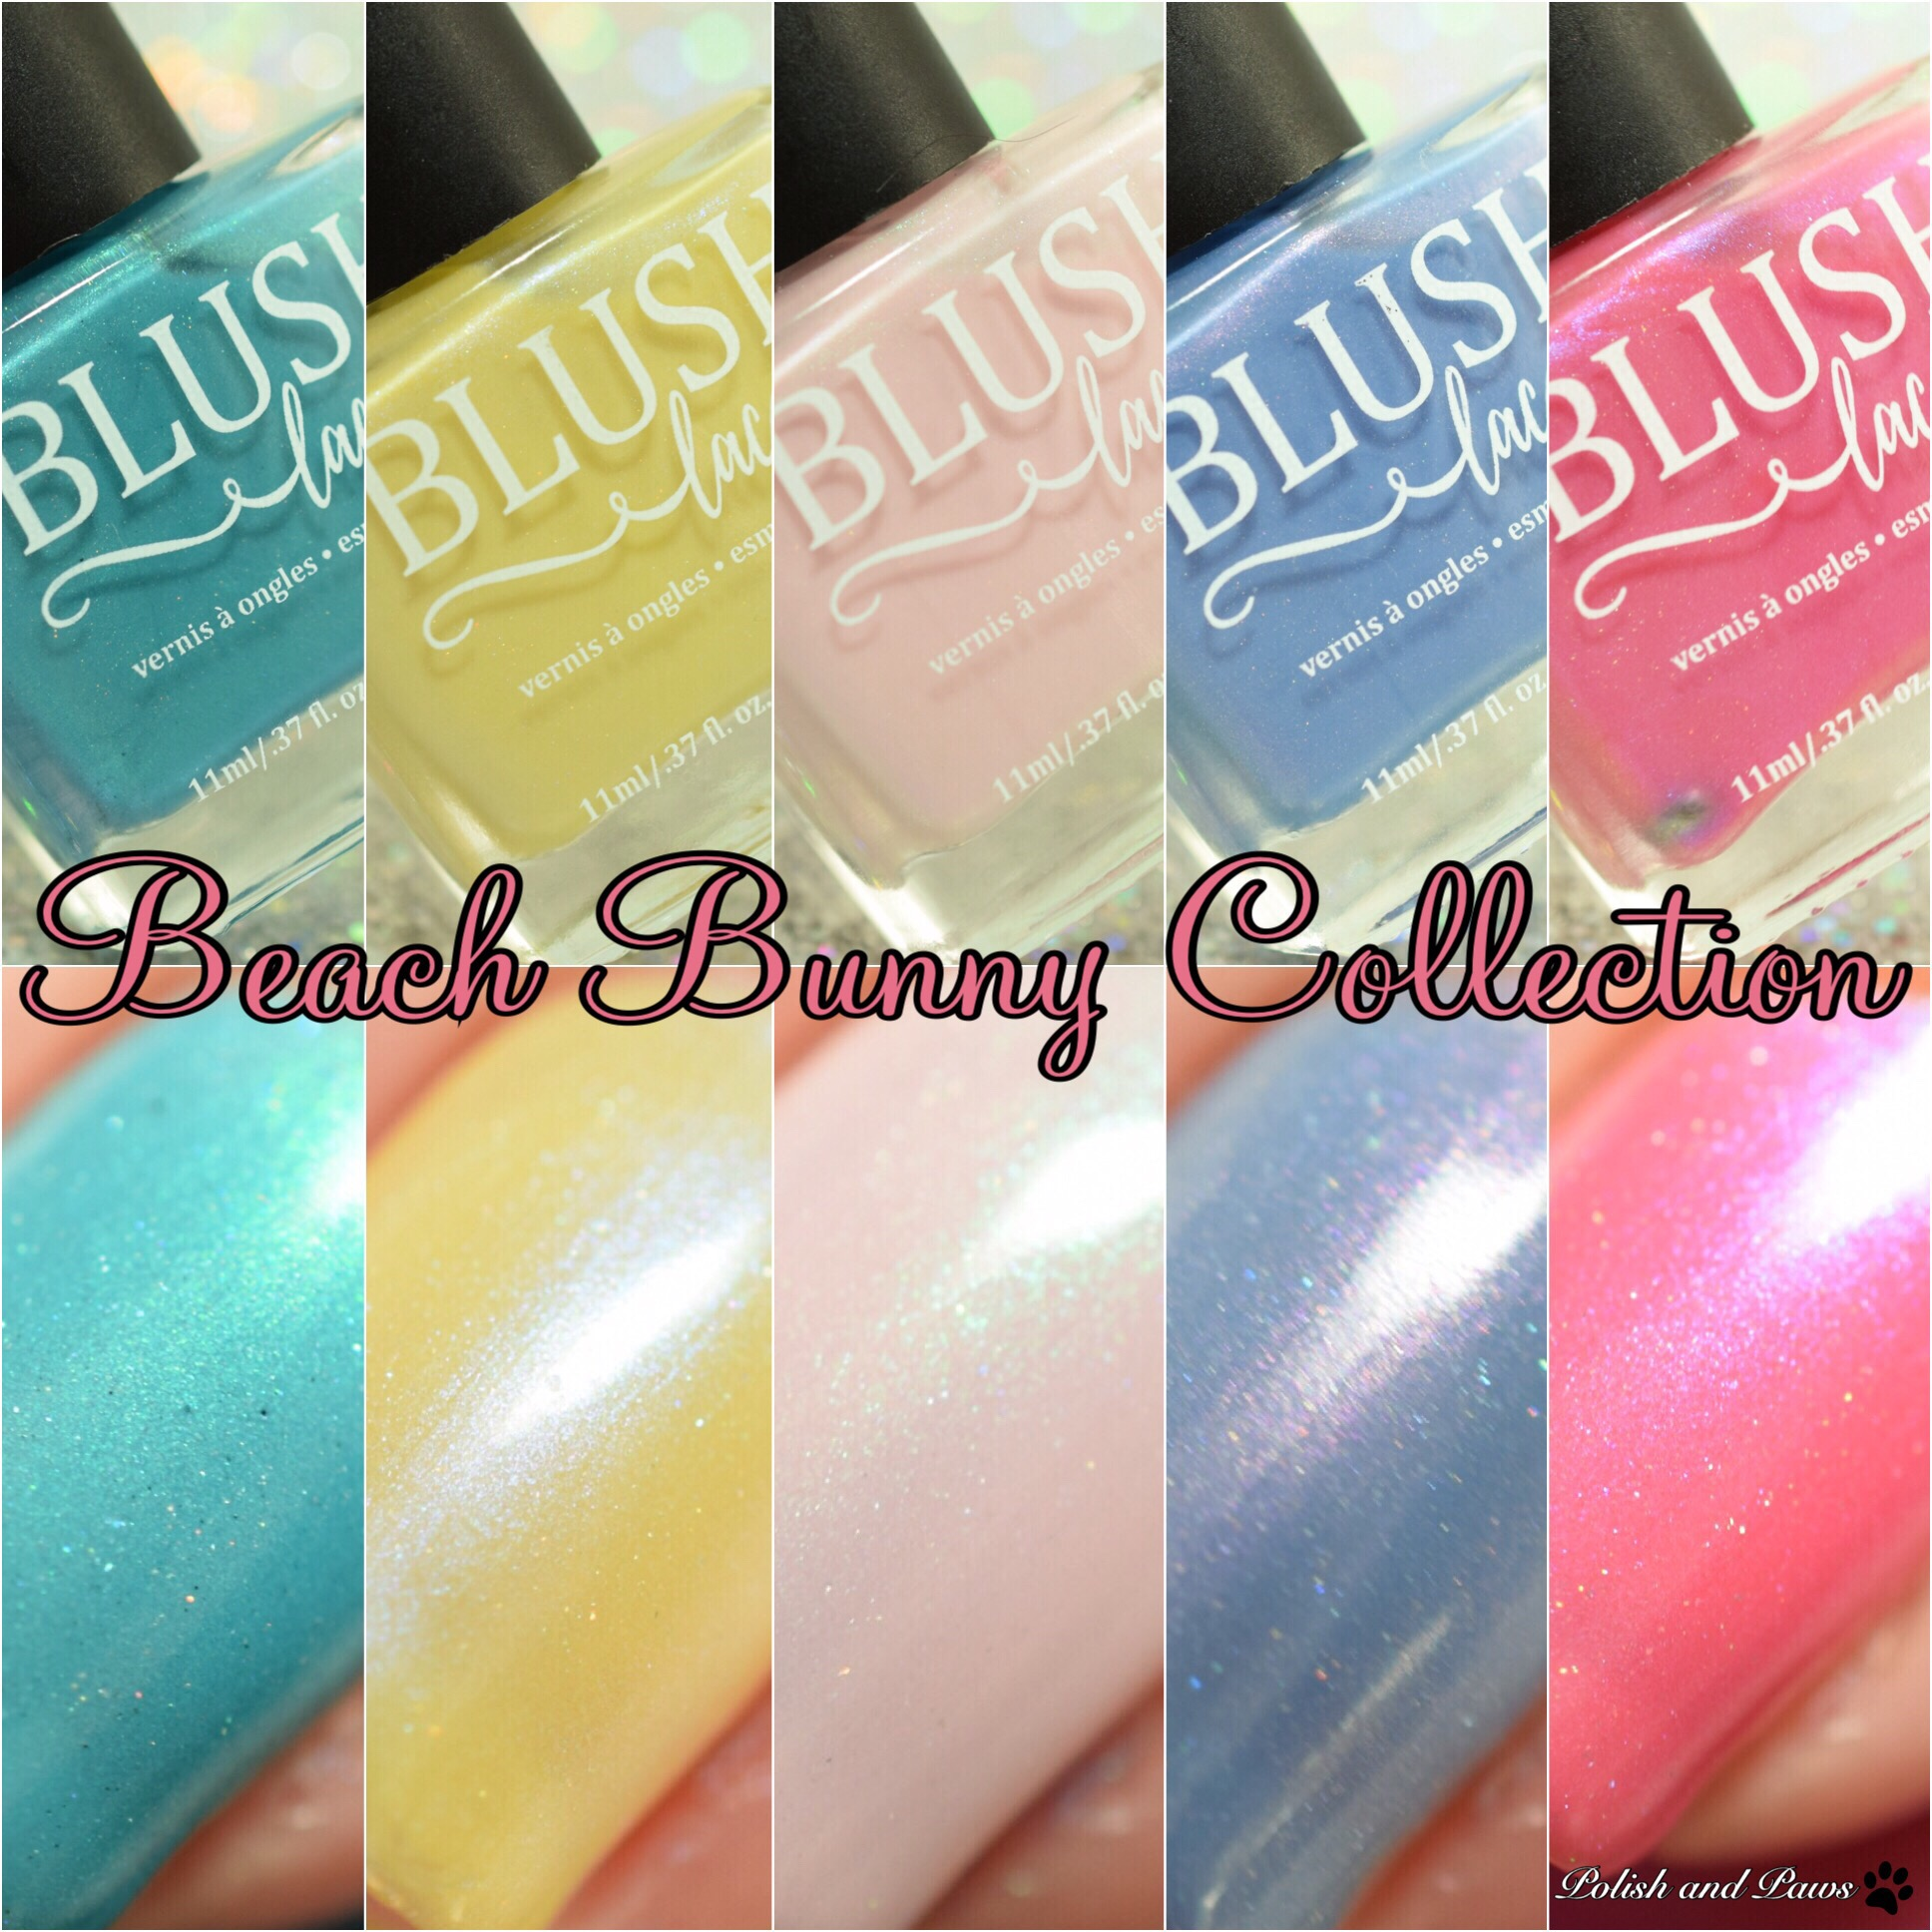 Blush Lacquers Beach Bunny Collection